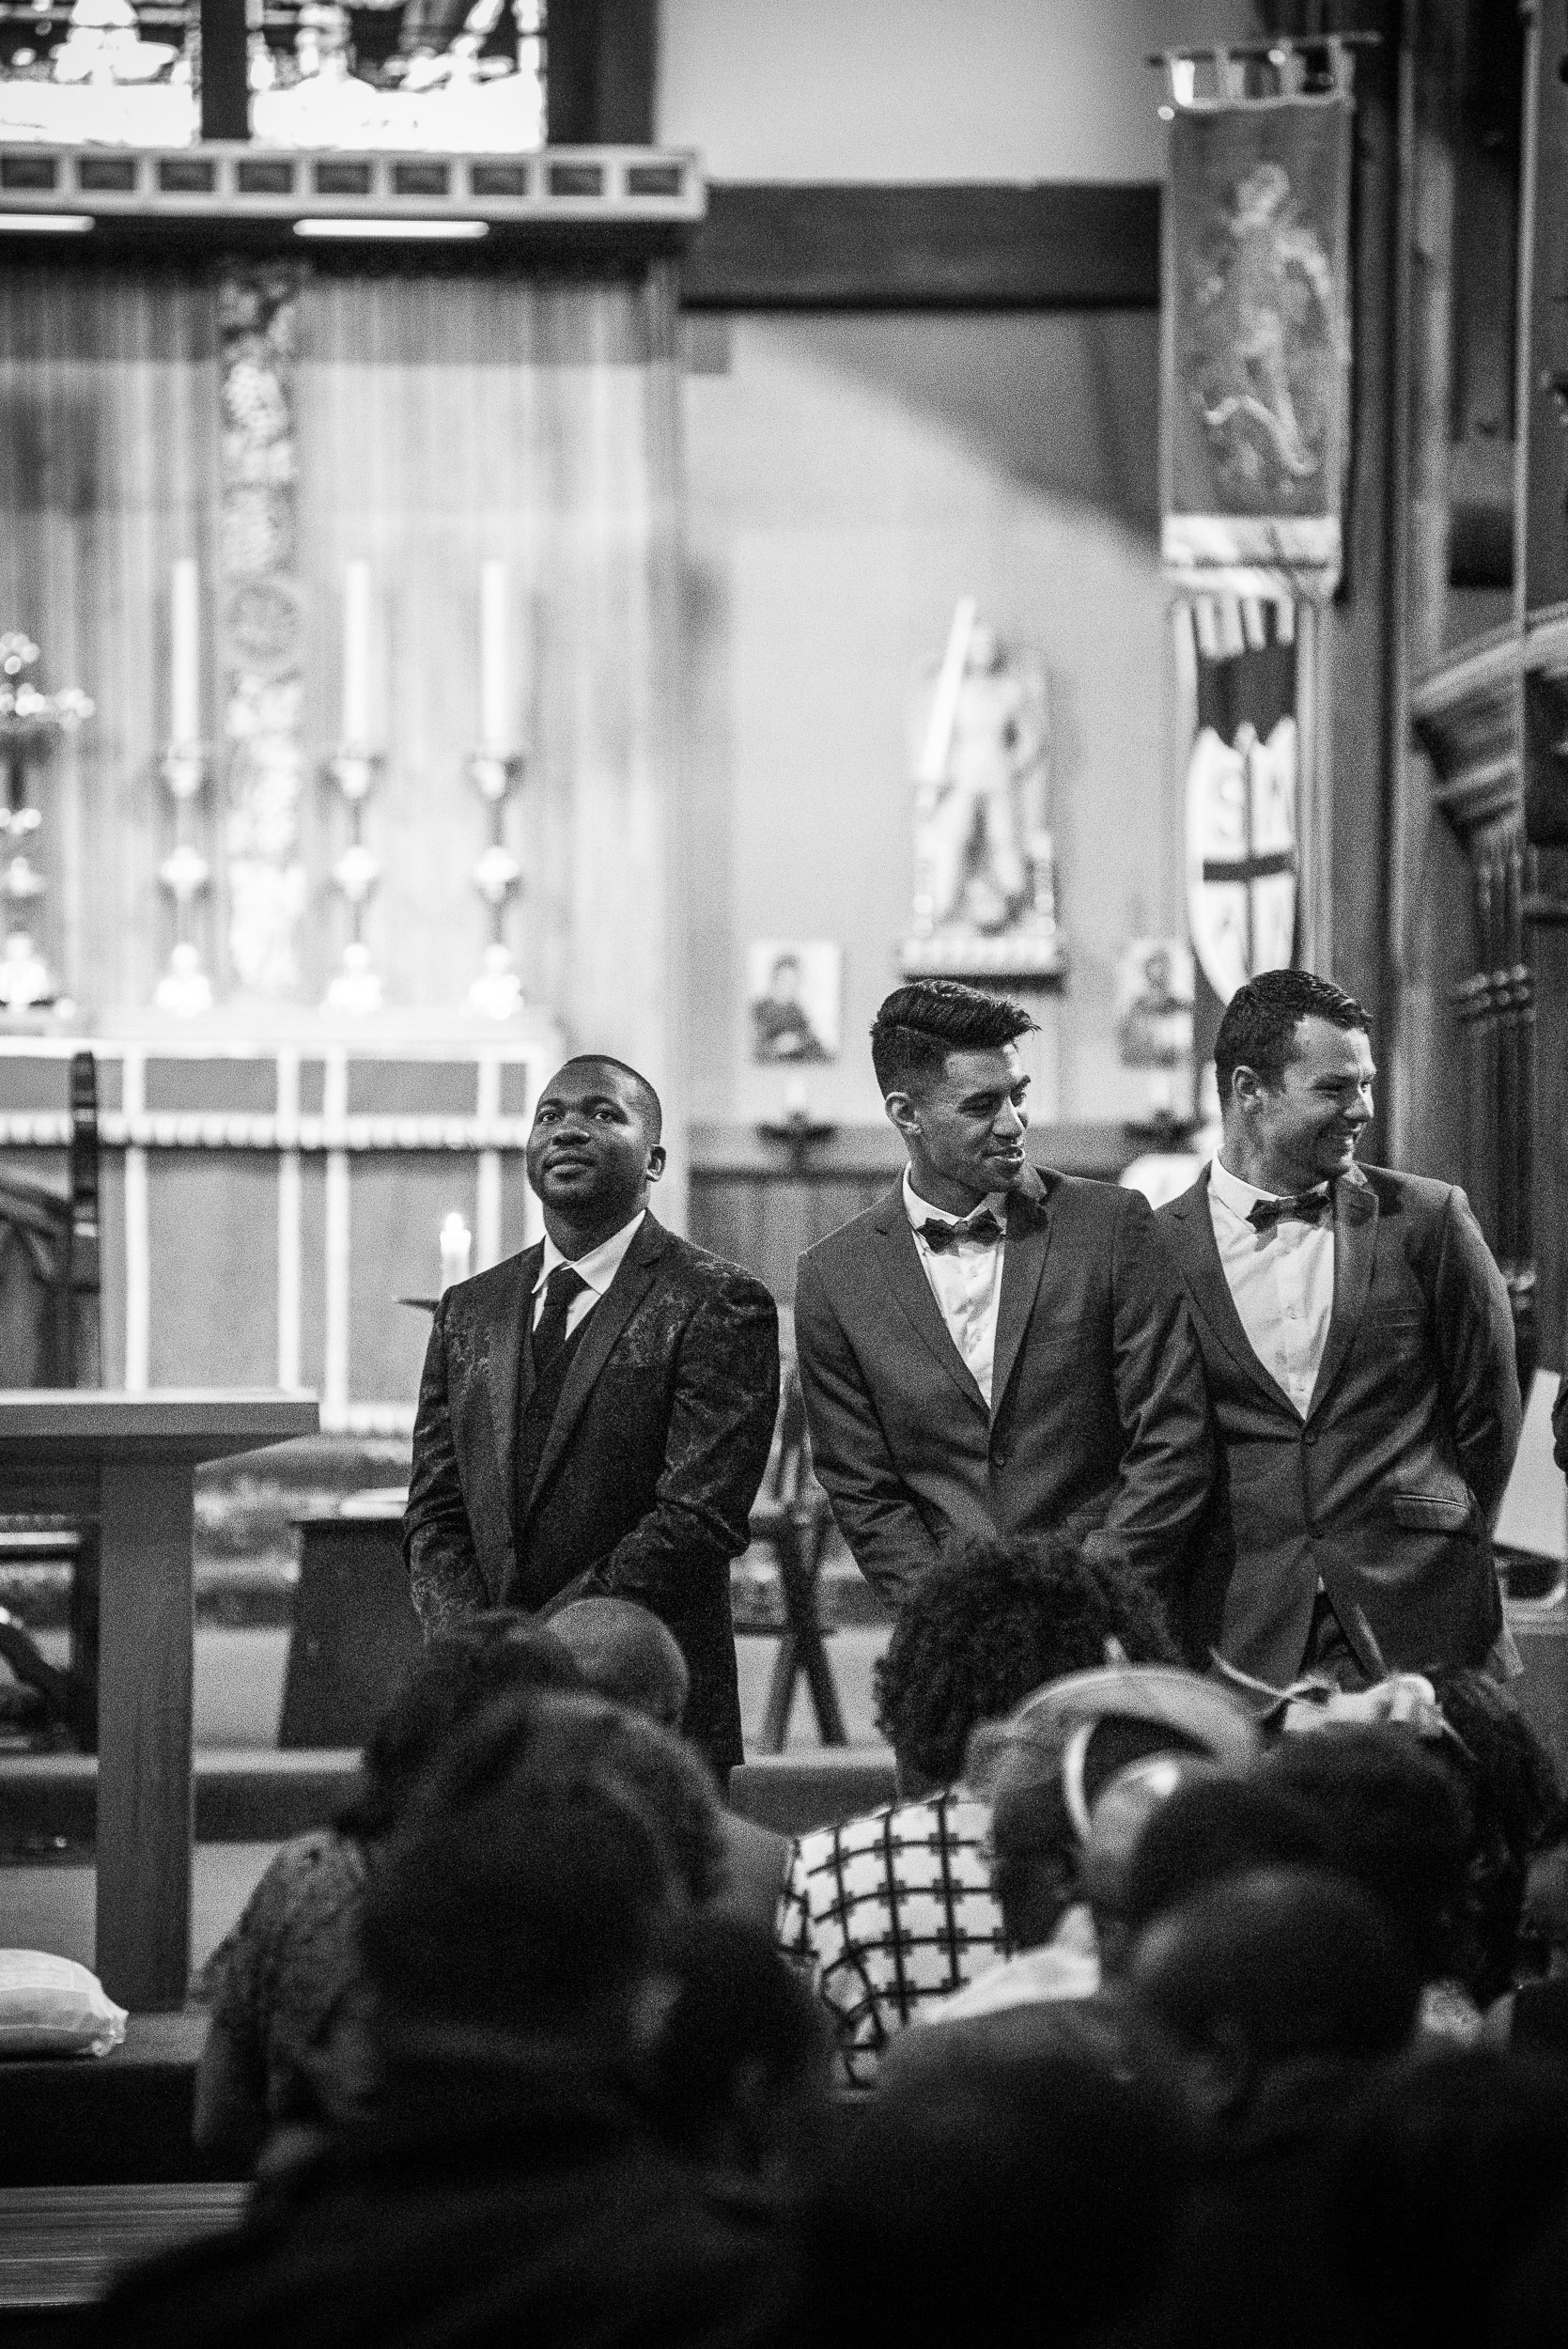 Karly and Alfred's wedding day at St Michael's Church and Christchurch Art Gallery, Christchurch, New Zealand, on the 18th February 2017. © www.myweddingphotographer.co.nz